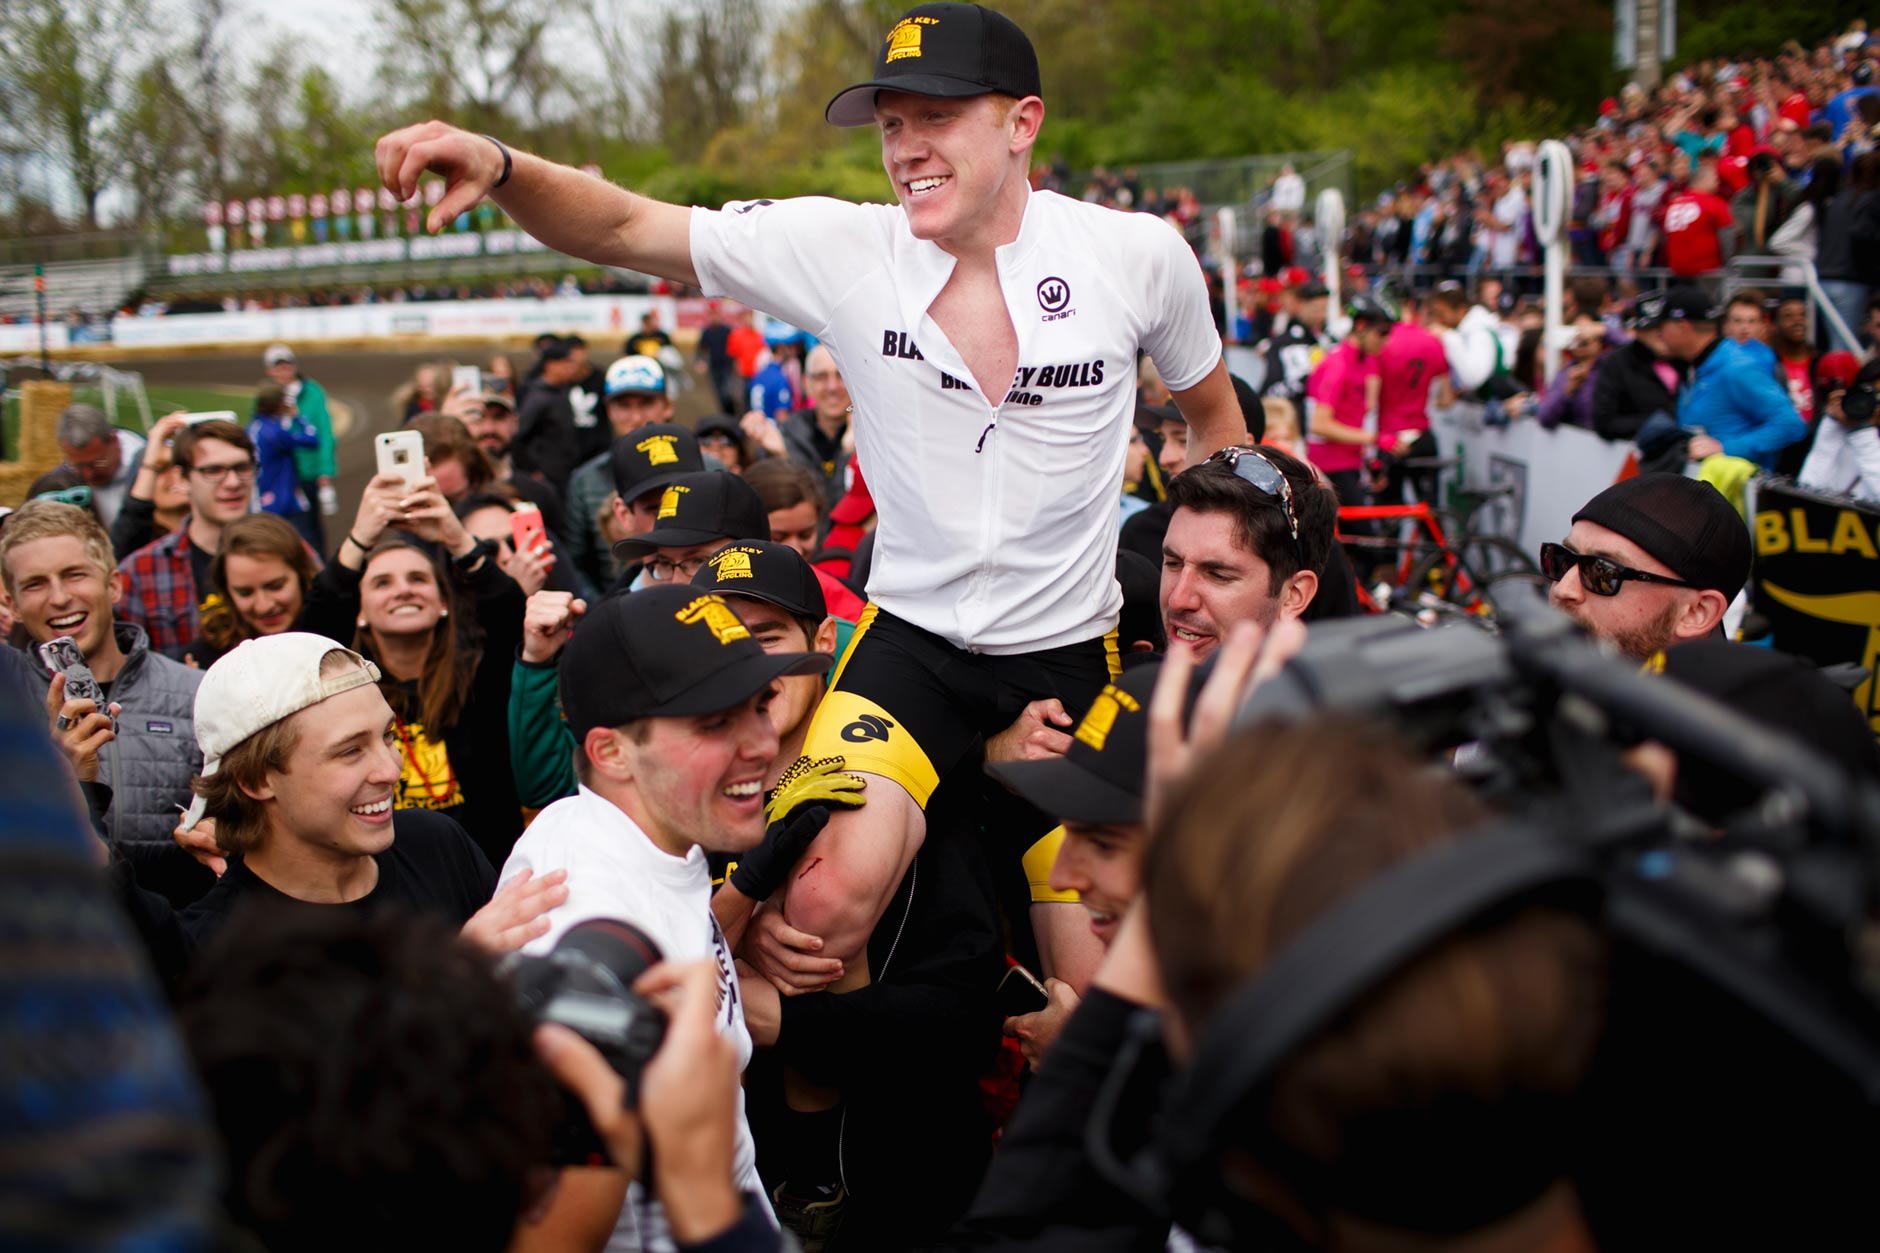 Fans carry Black Key Bulls rider Kevin Mangel out of the team's pit area after Mangel rode the final leg of his team's victory in the Men's Little 500 at Bill Armstrong Stadium on Saturday, April 22, 2017. (James Brosher/IU Communications)